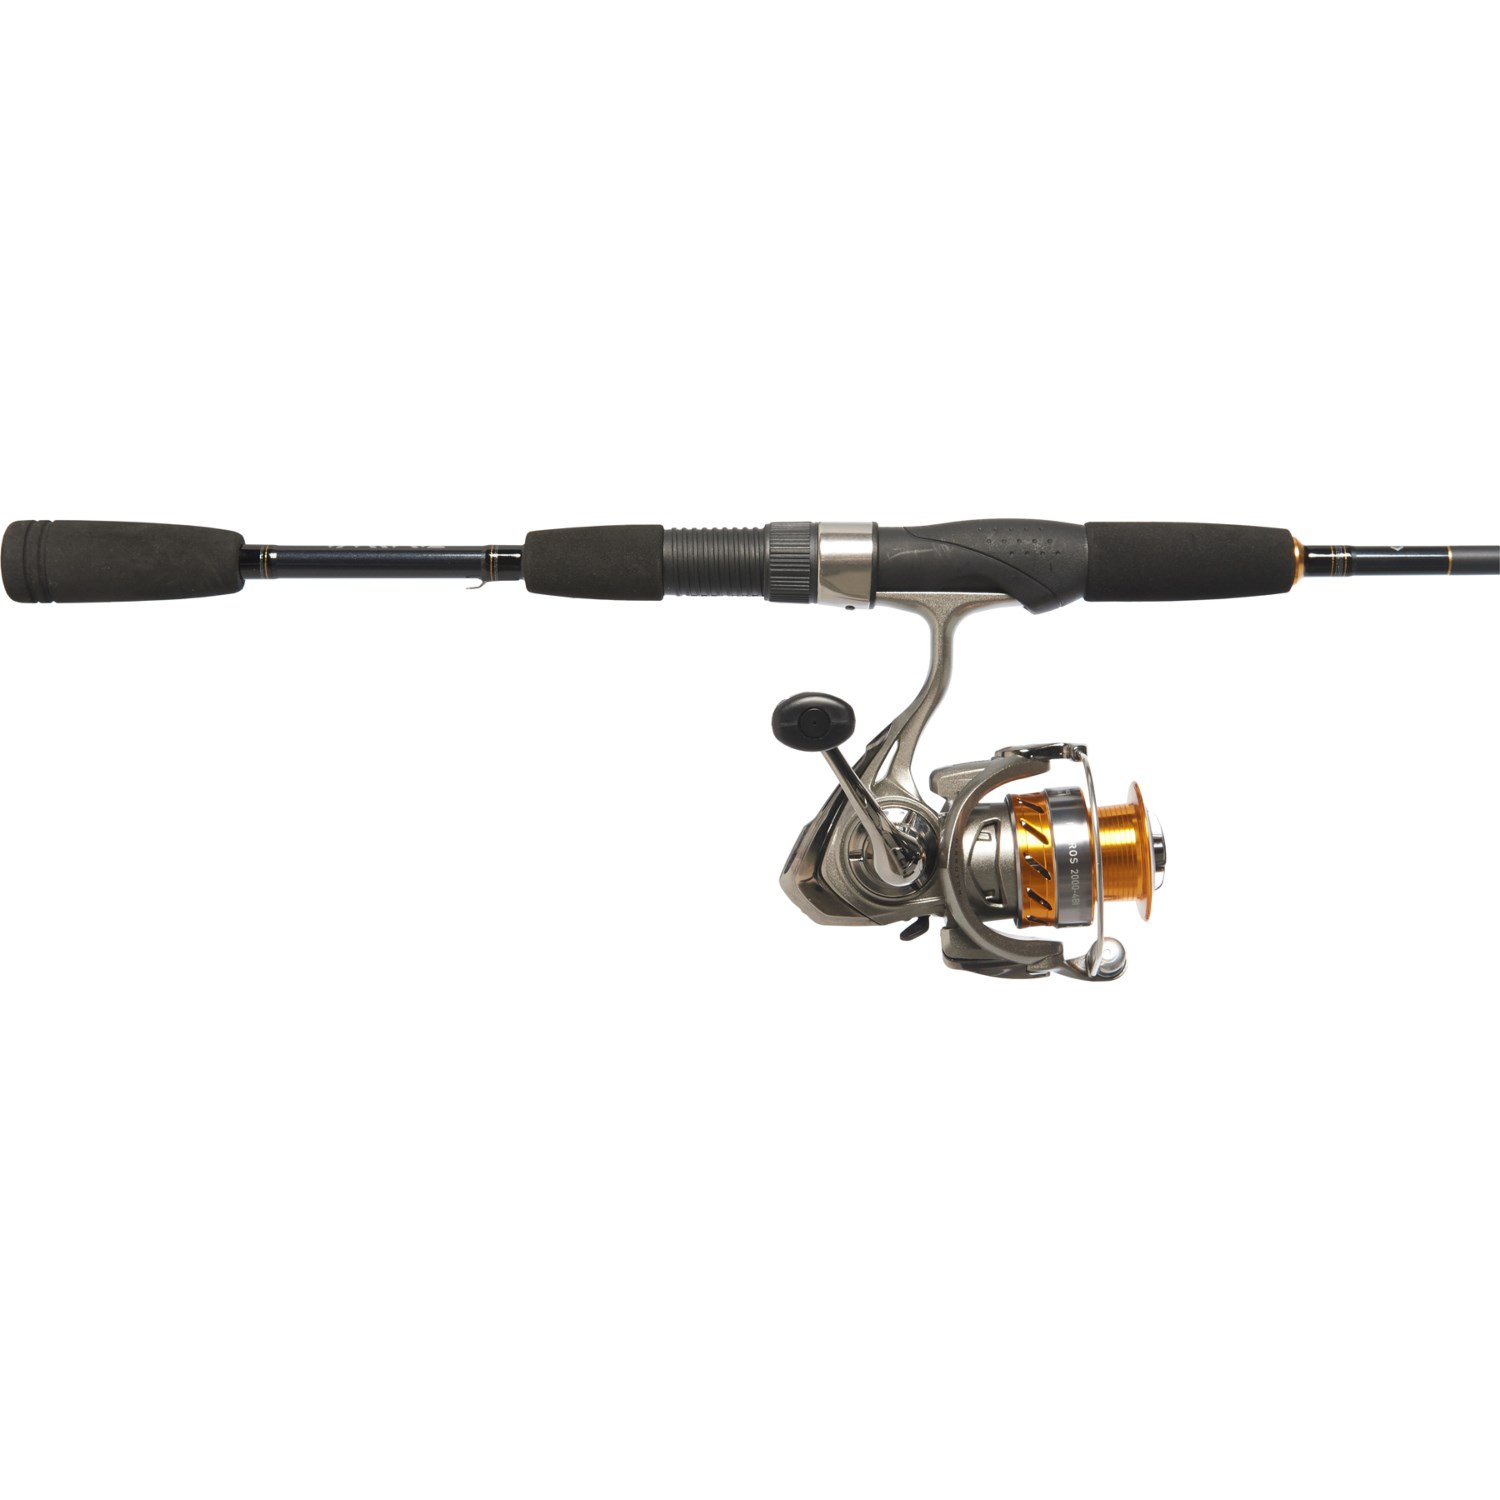 Daiwa Revros Spinning Rod and Reel Combo - 2-Piece, 5'6